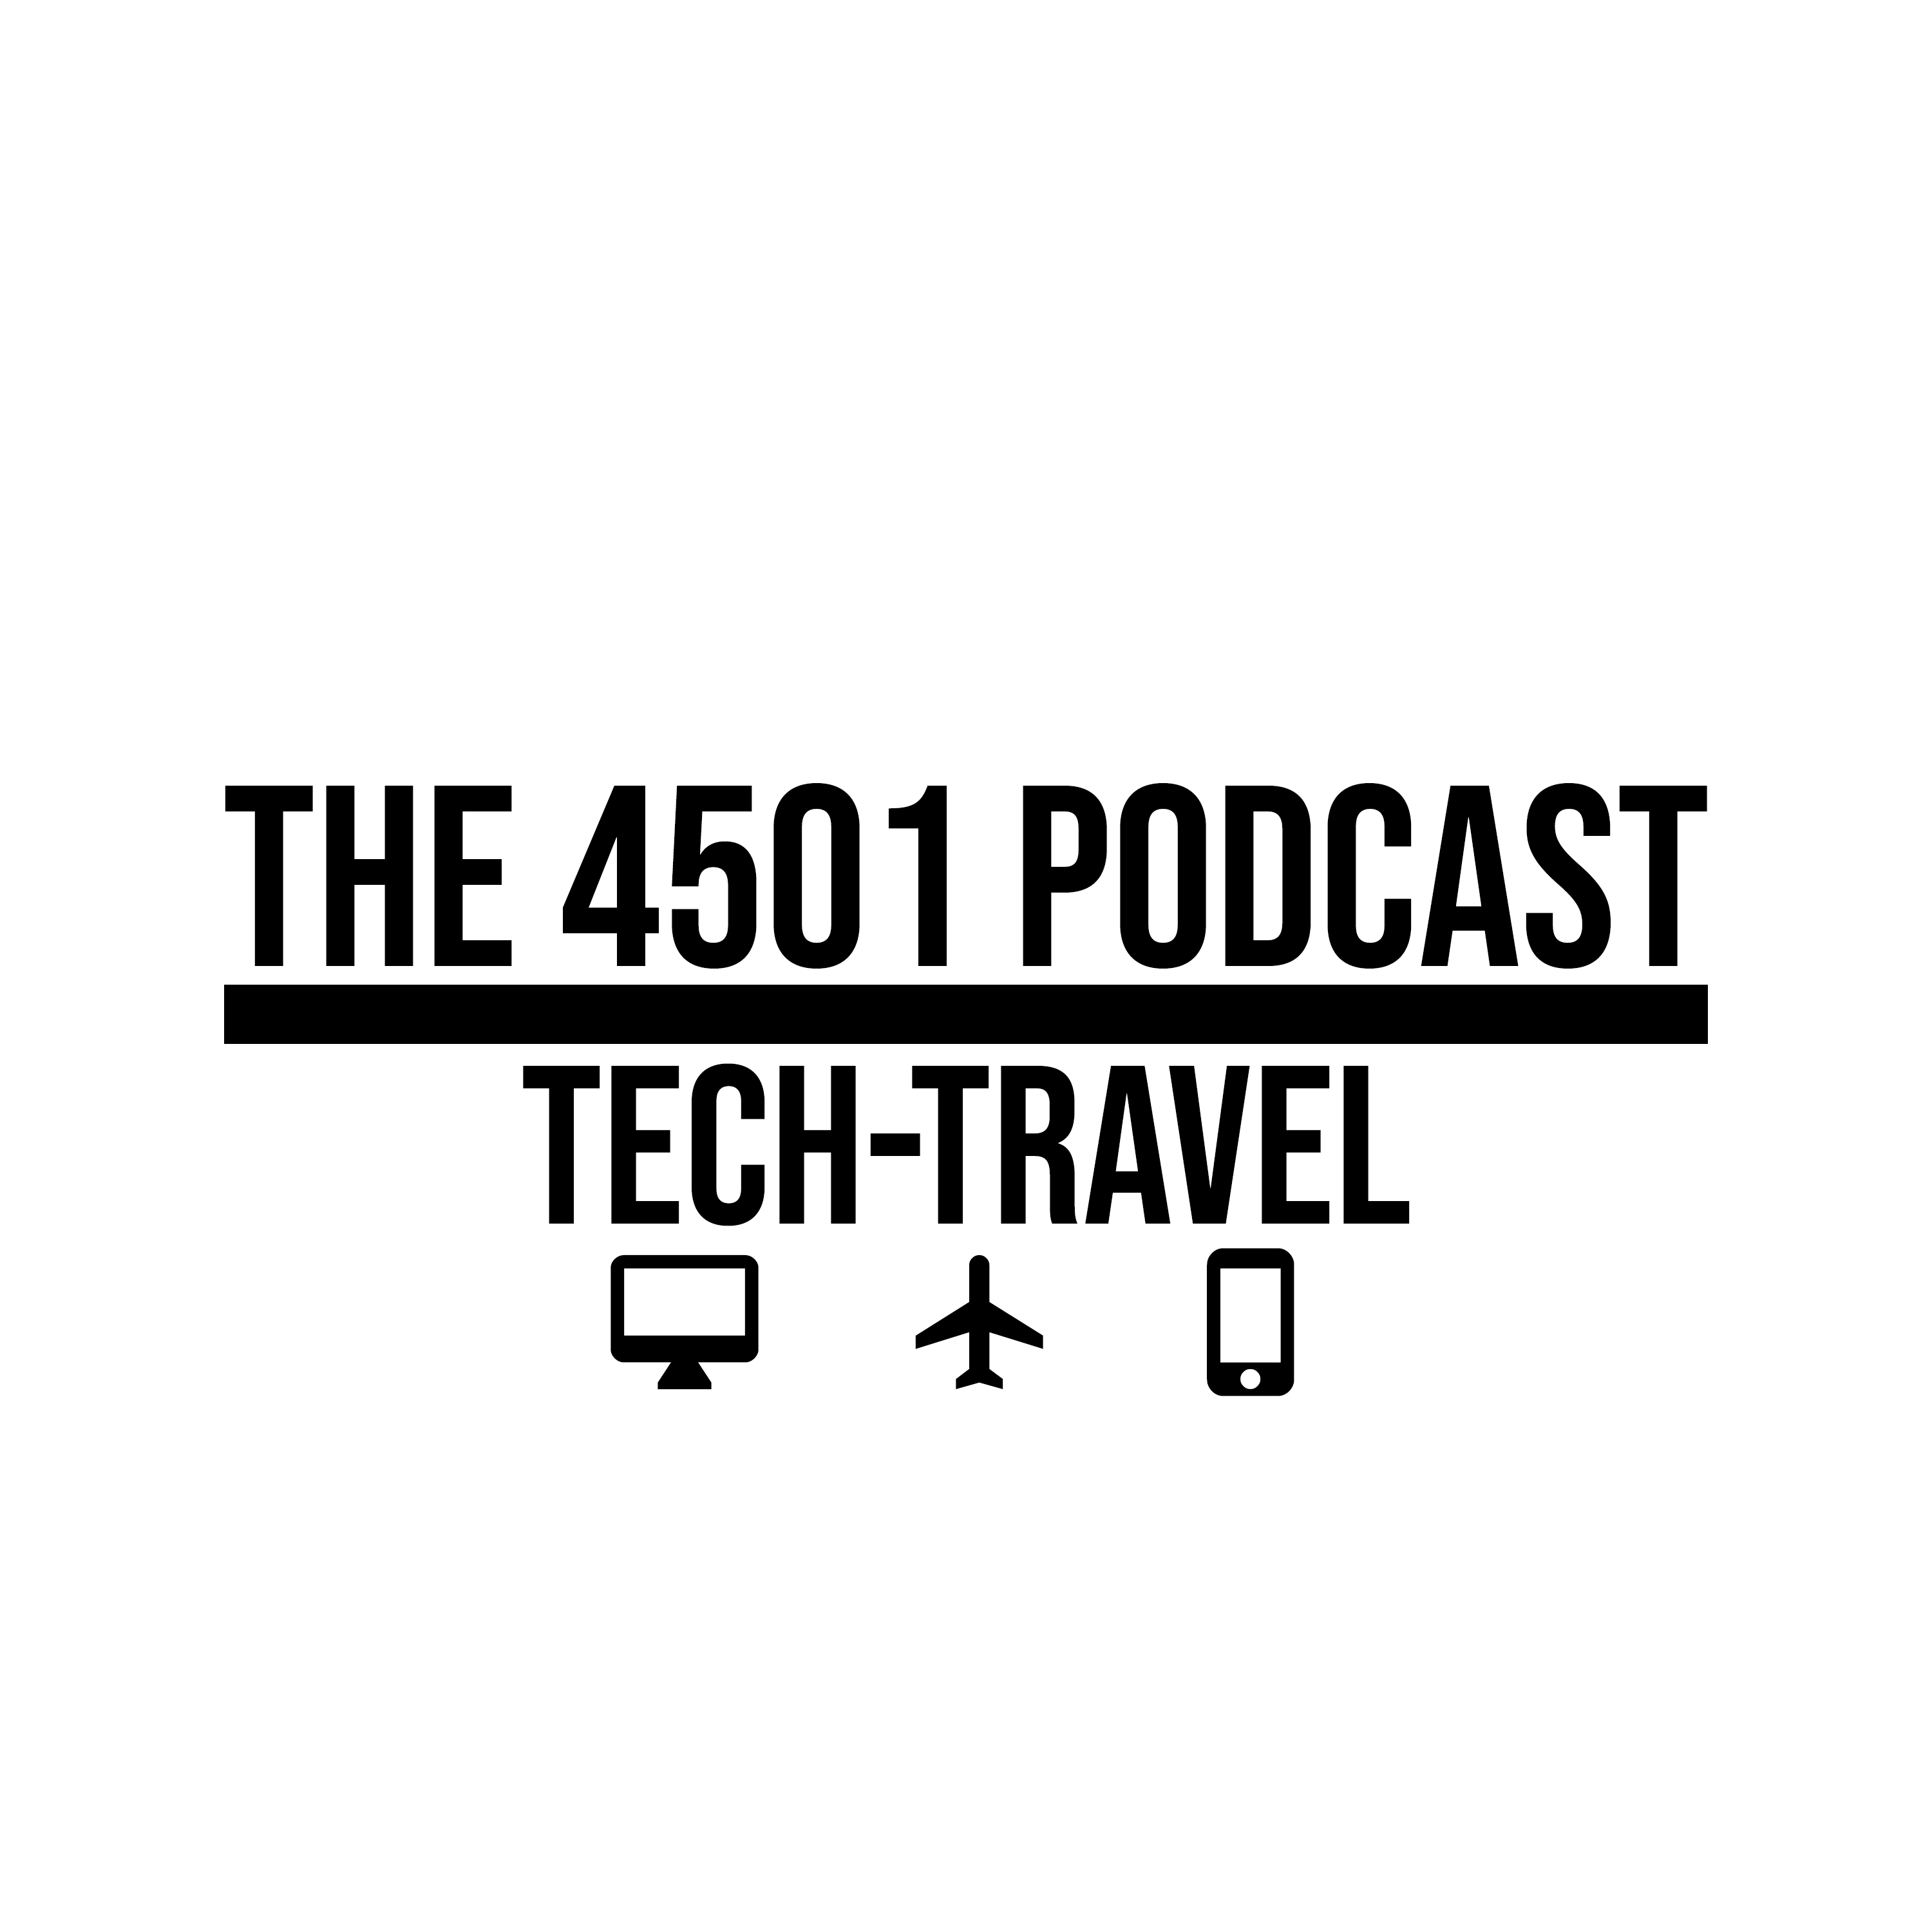 The 4501 Podcast